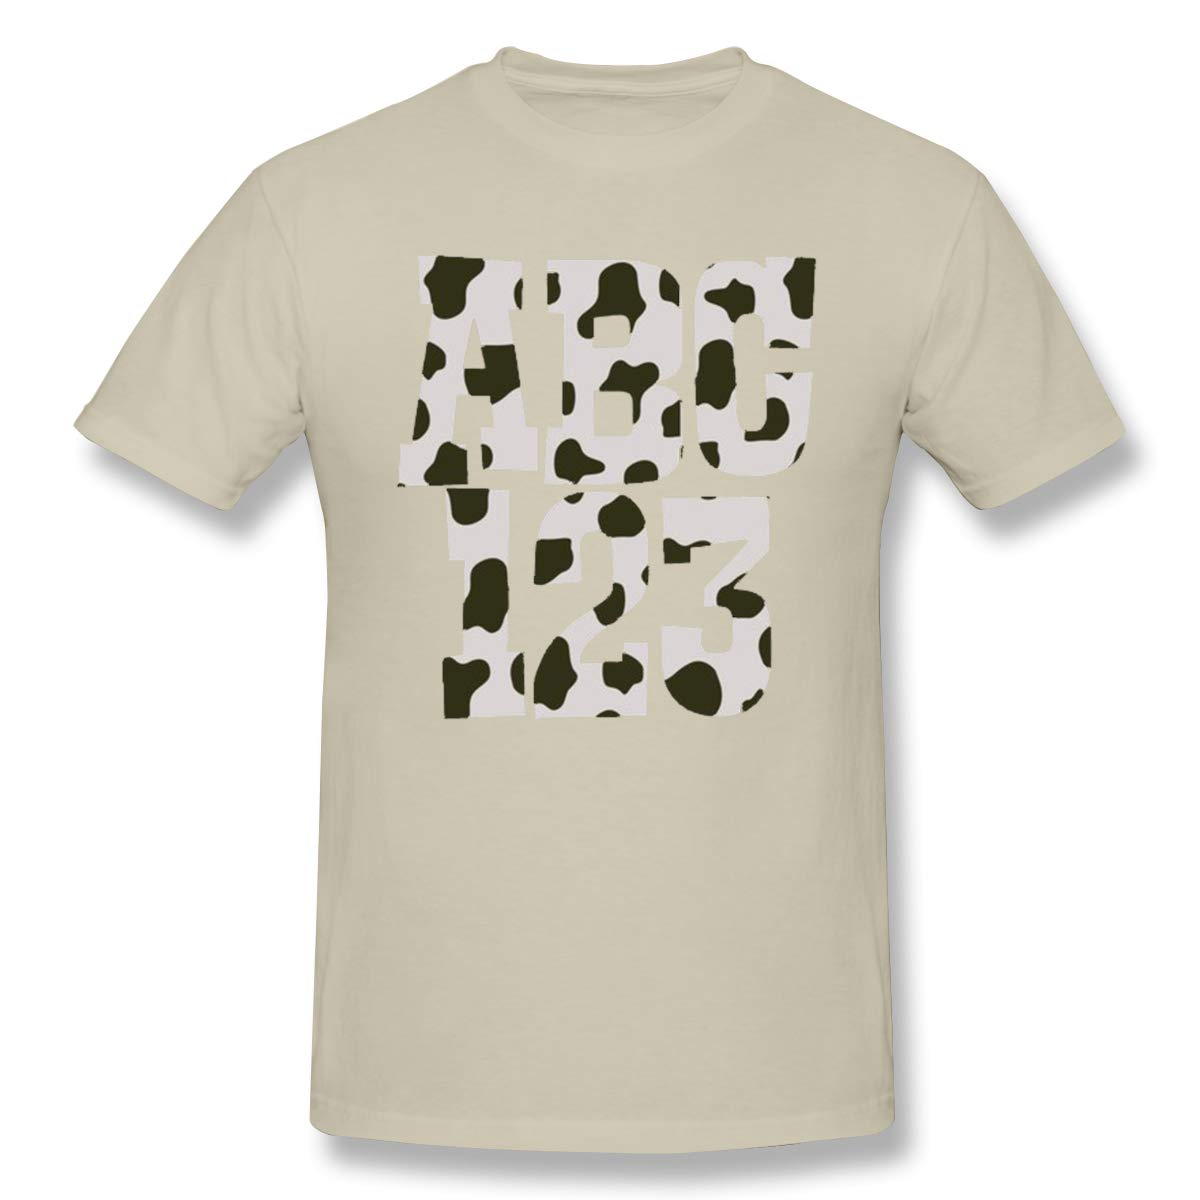 Grace S Letter Digital Printed Classic Tshirts Natural With Short Sleeve